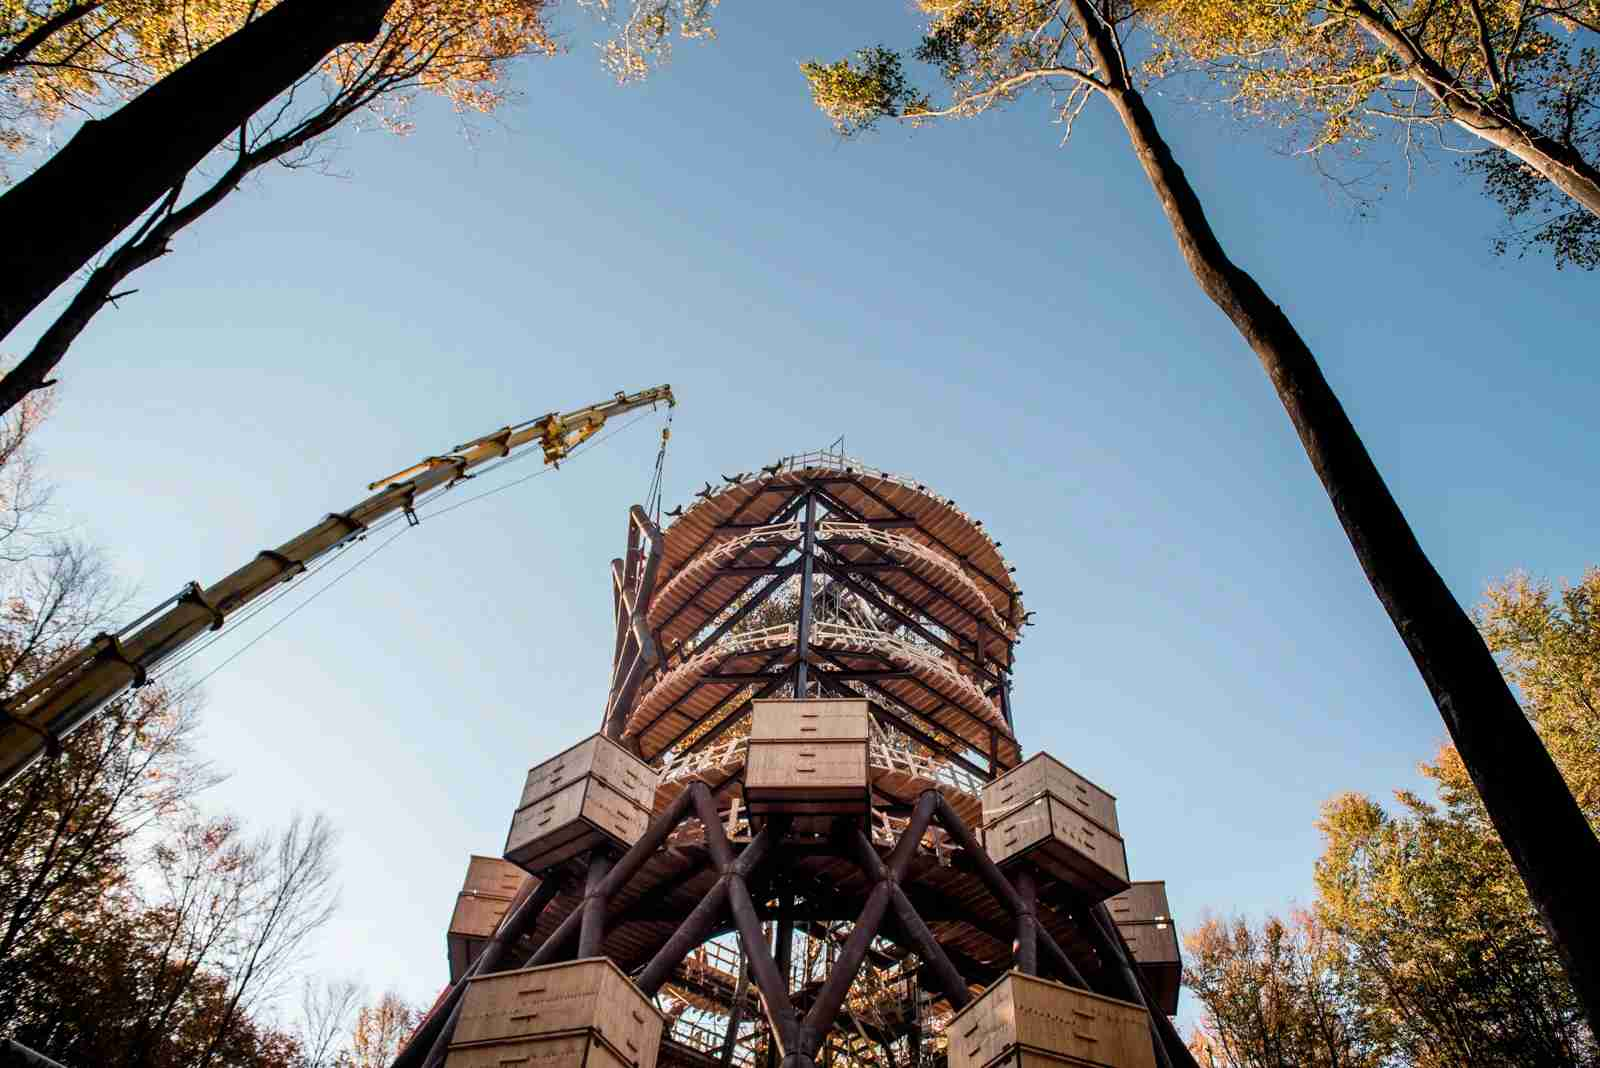 The 45-meter-high observation tower of the Camp Adventure, designed by EFFECT Architects, is pictured as it is under construction at Gisselfeld Kloster near Haslev on Zealand in Denmark, on October 15, 2018. (Photo by MADS CLAUS RASMUSSEN/AFP/Getty Images)